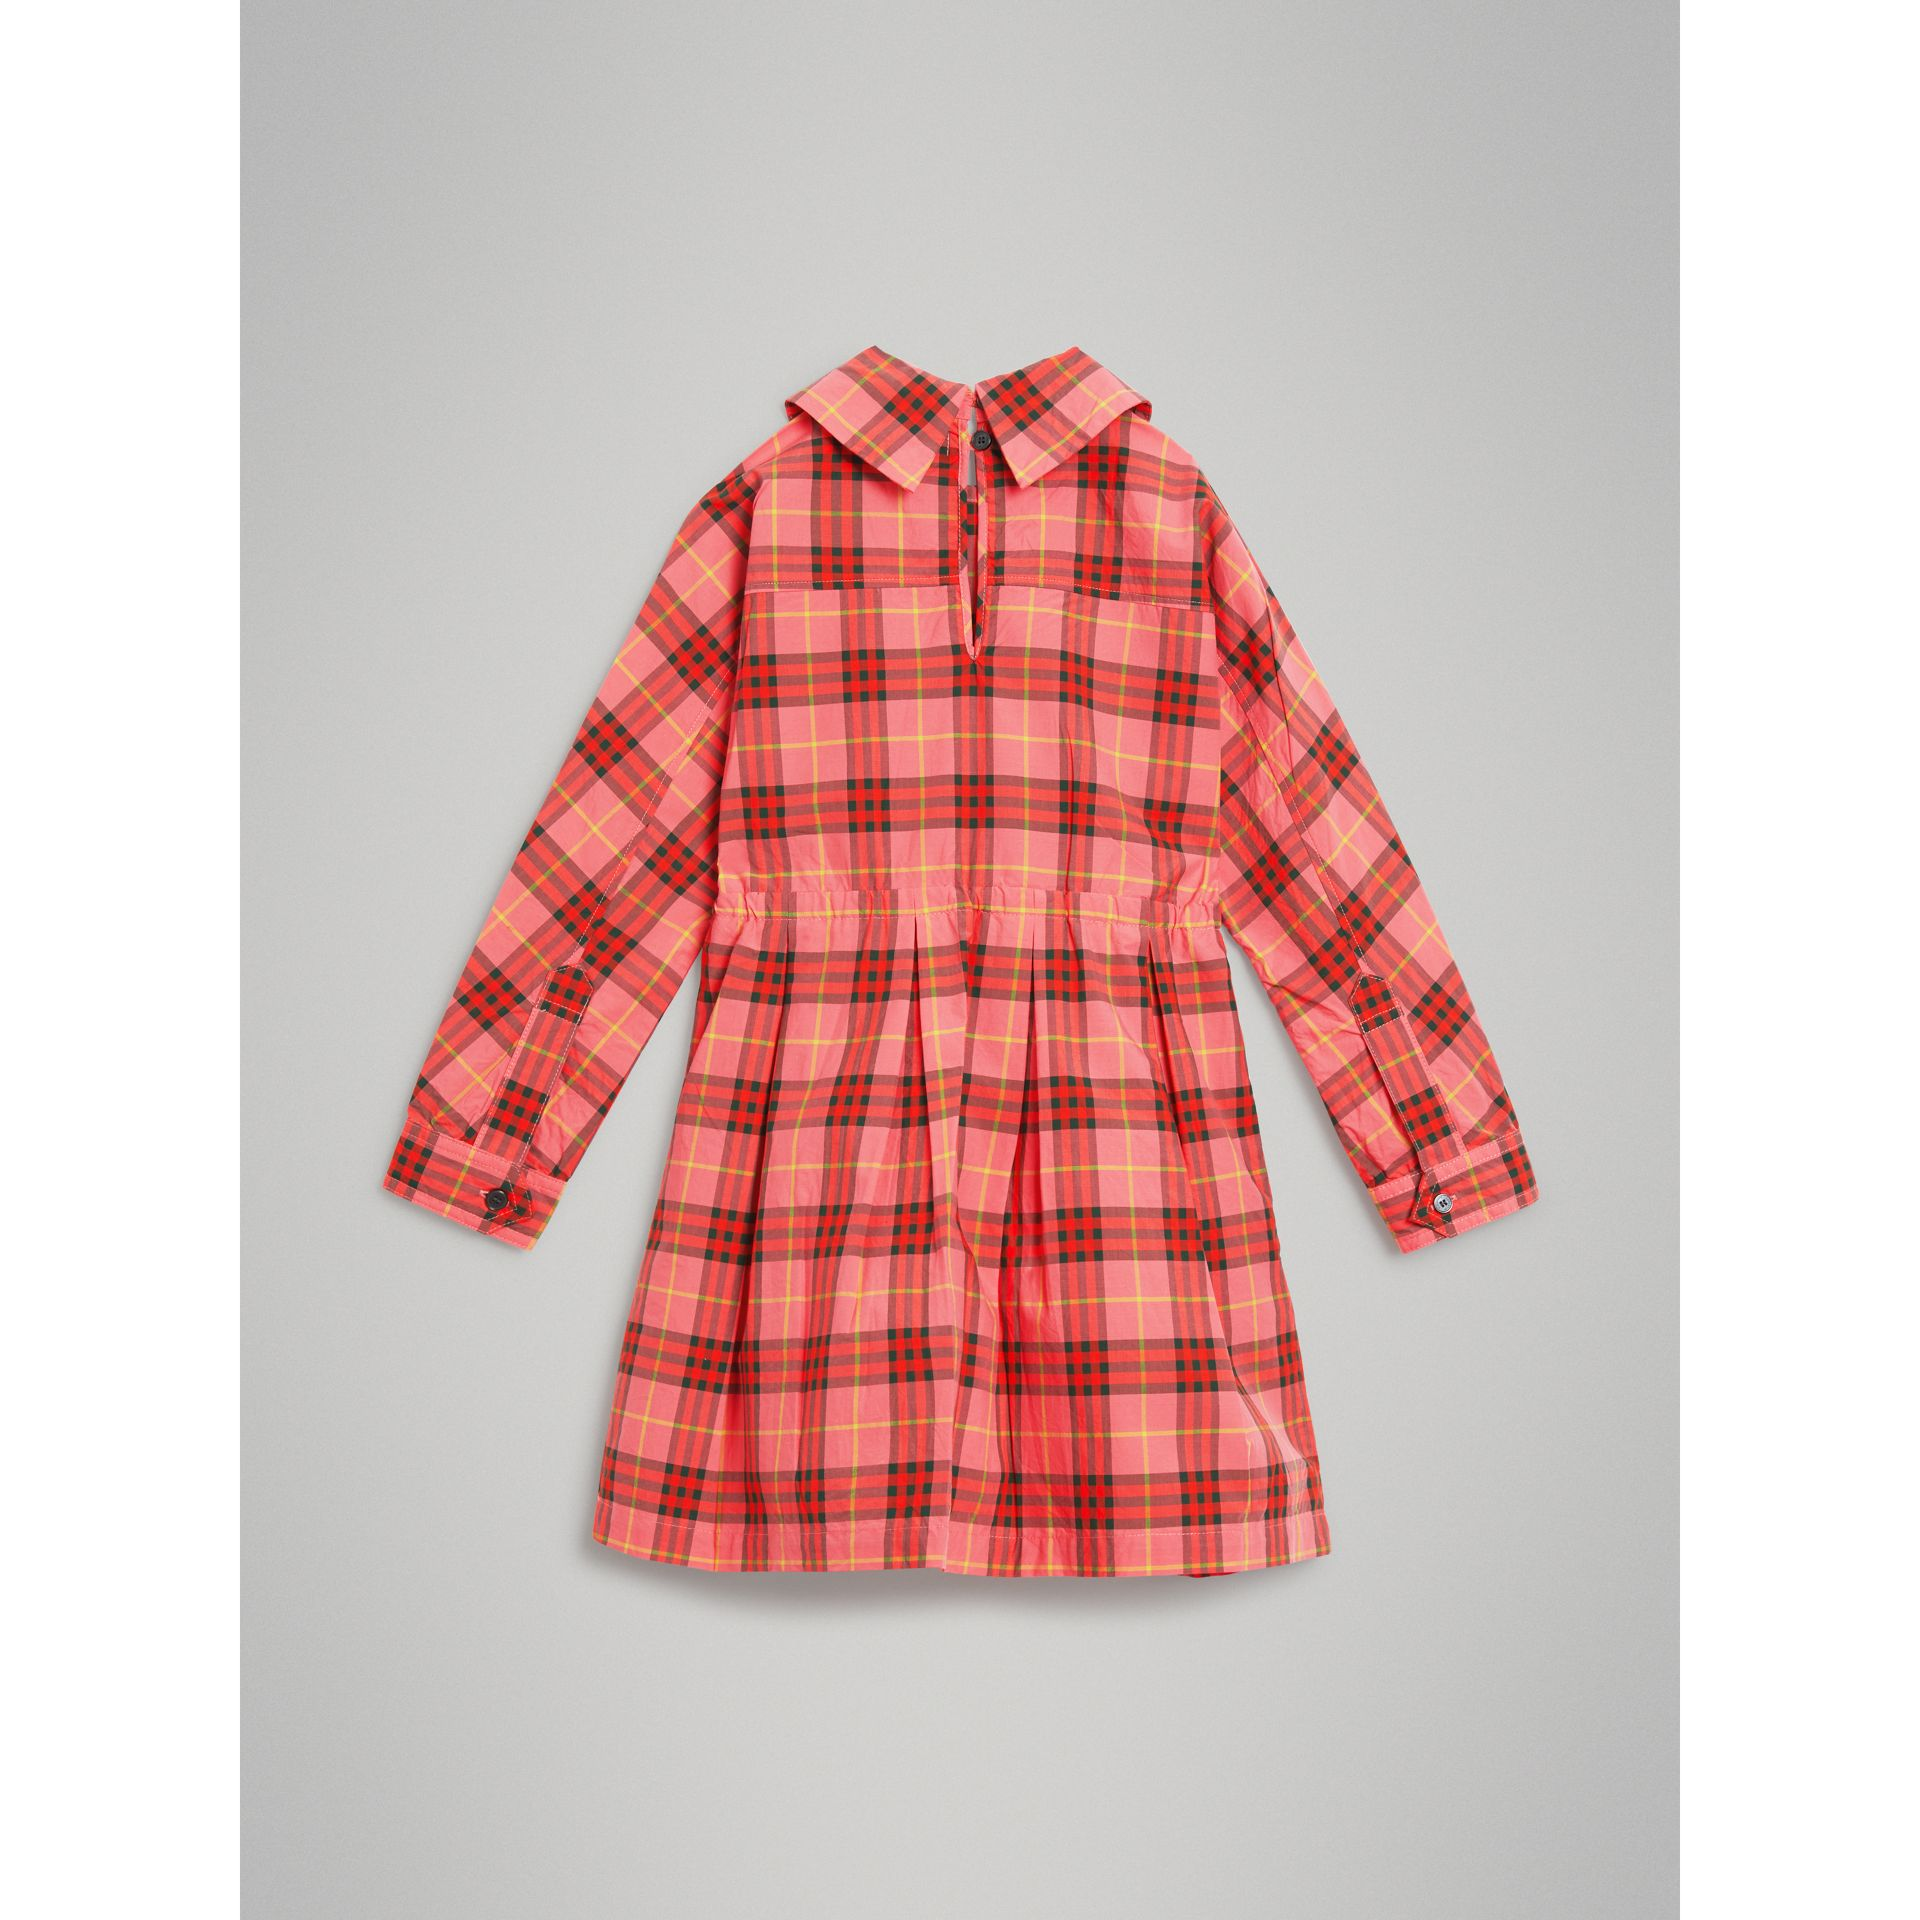 Robe à cordon de serrage en coton à motif check (Rouge Corail) - Fille | Burberry - photo de la galerie 3